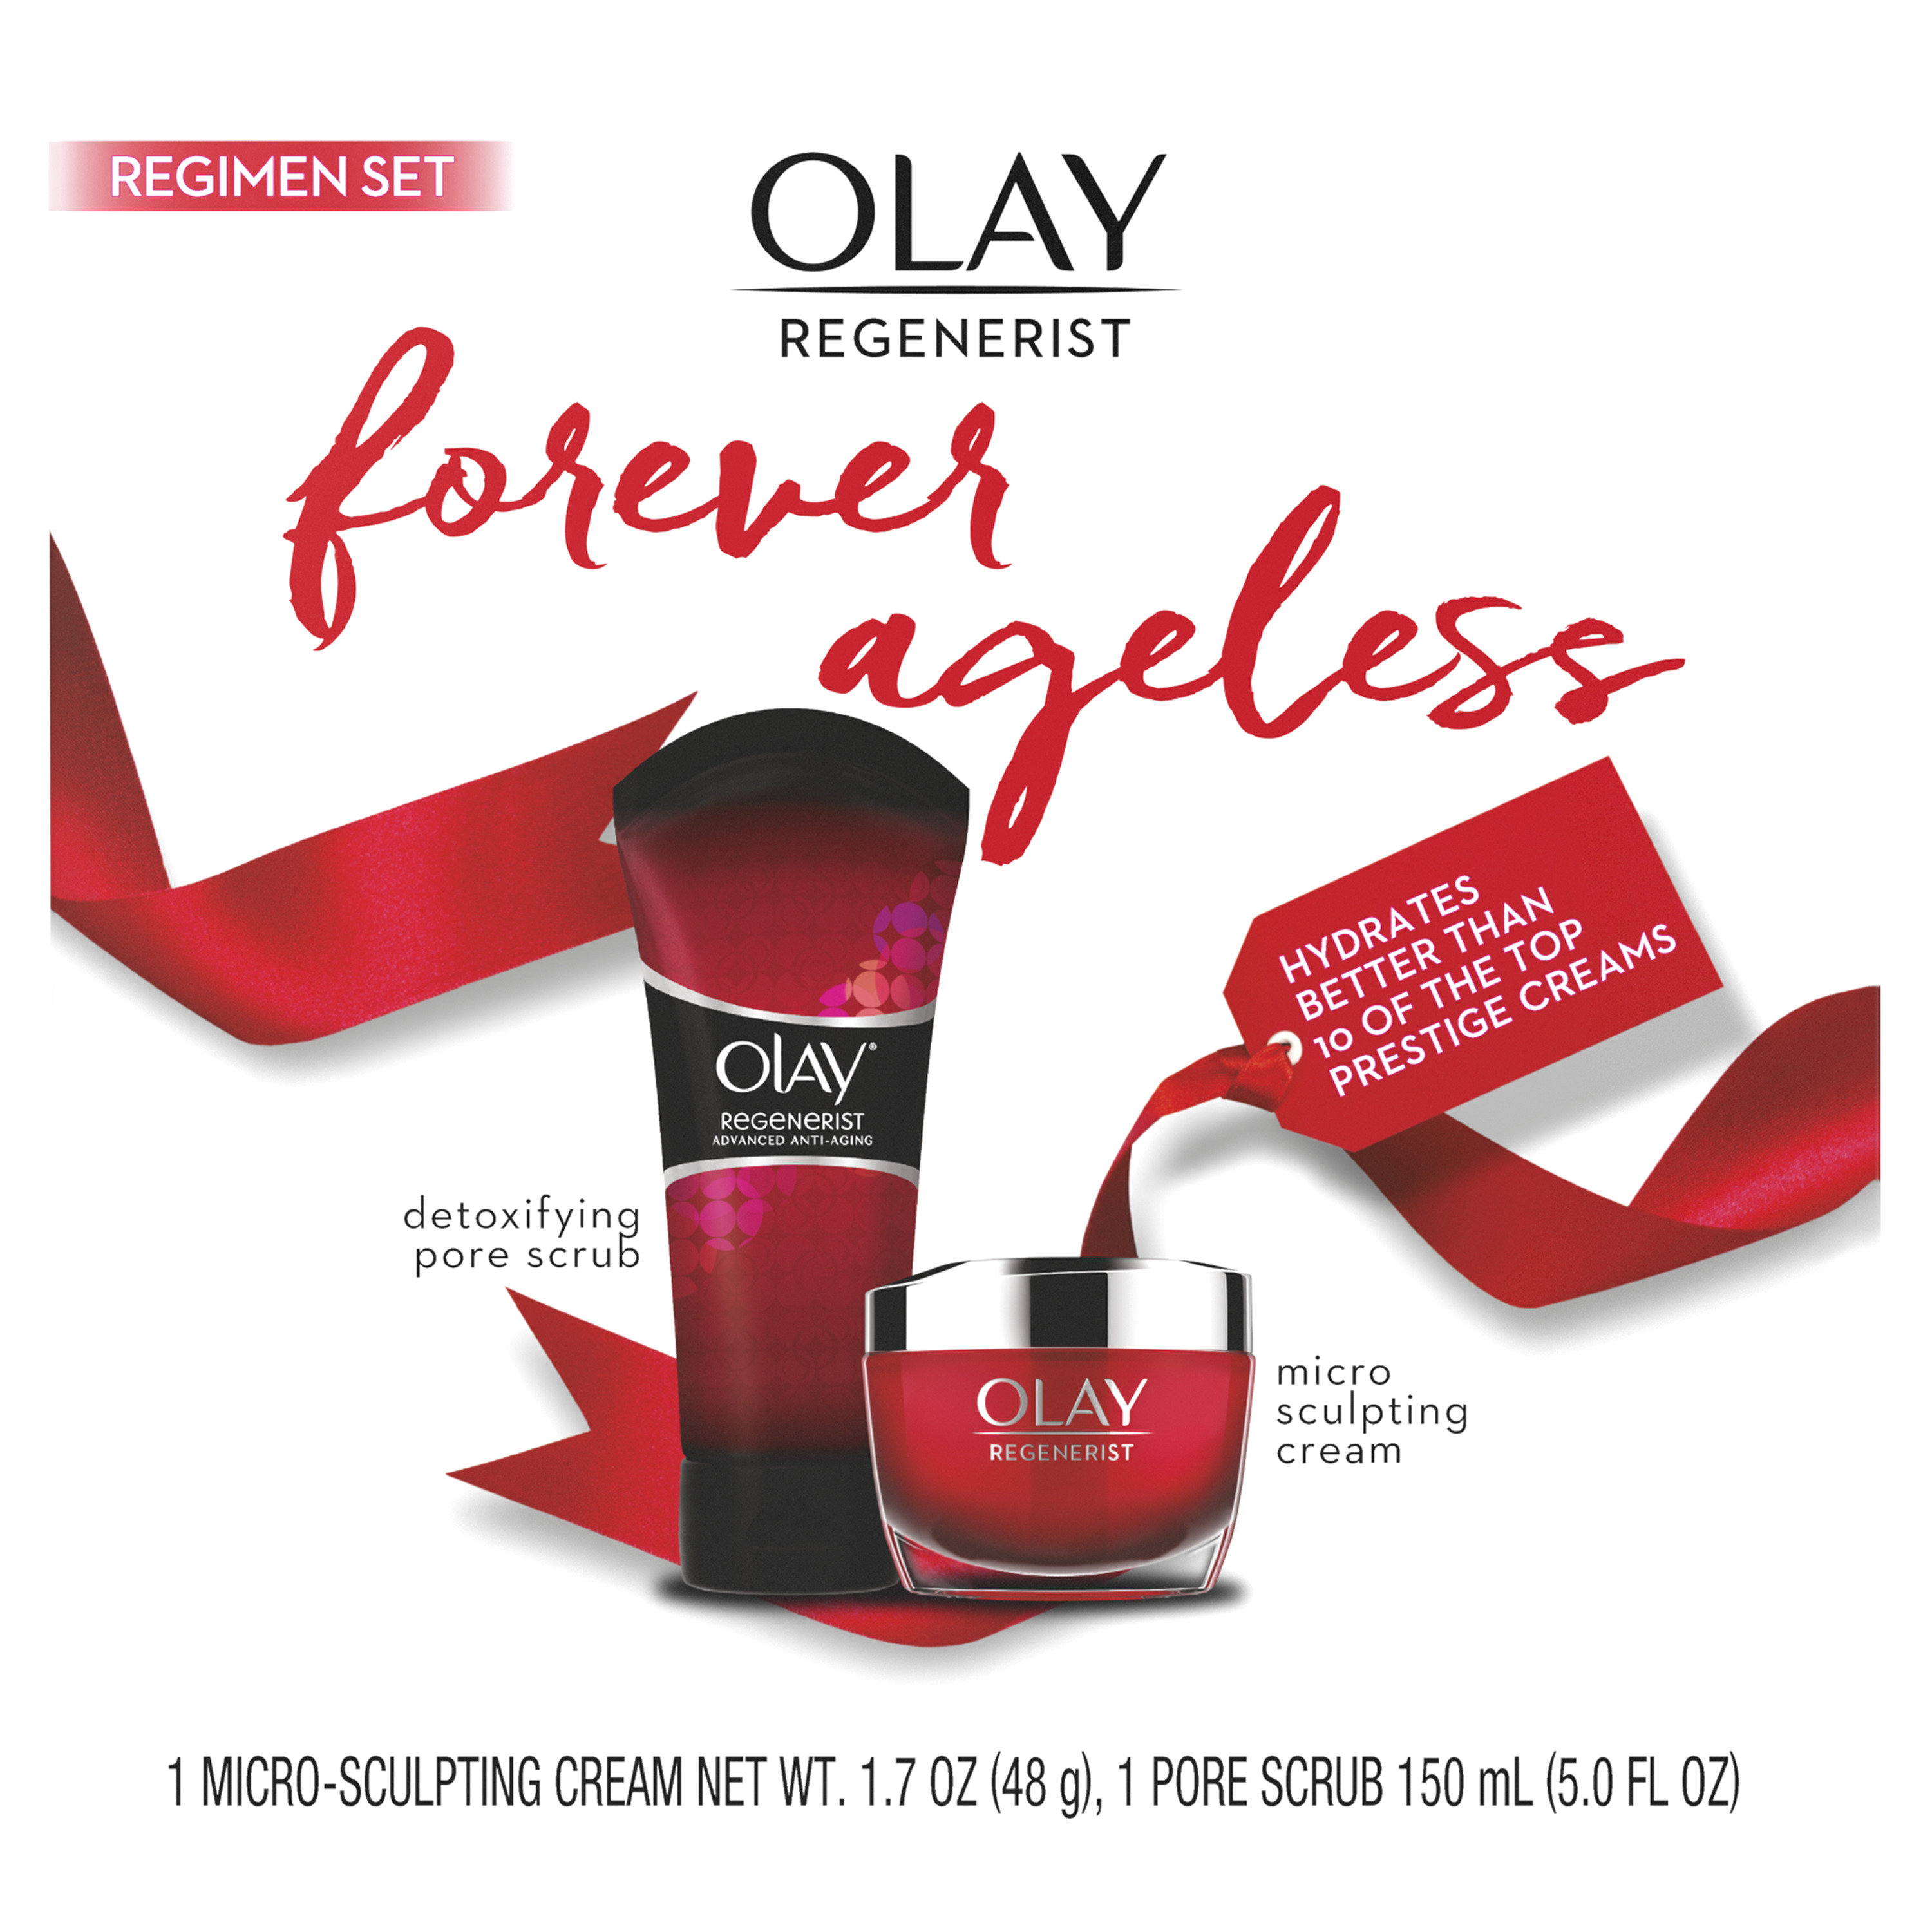 Olay Regenerist Forever Ageless Anti-Aging 2-Step Regimen Set